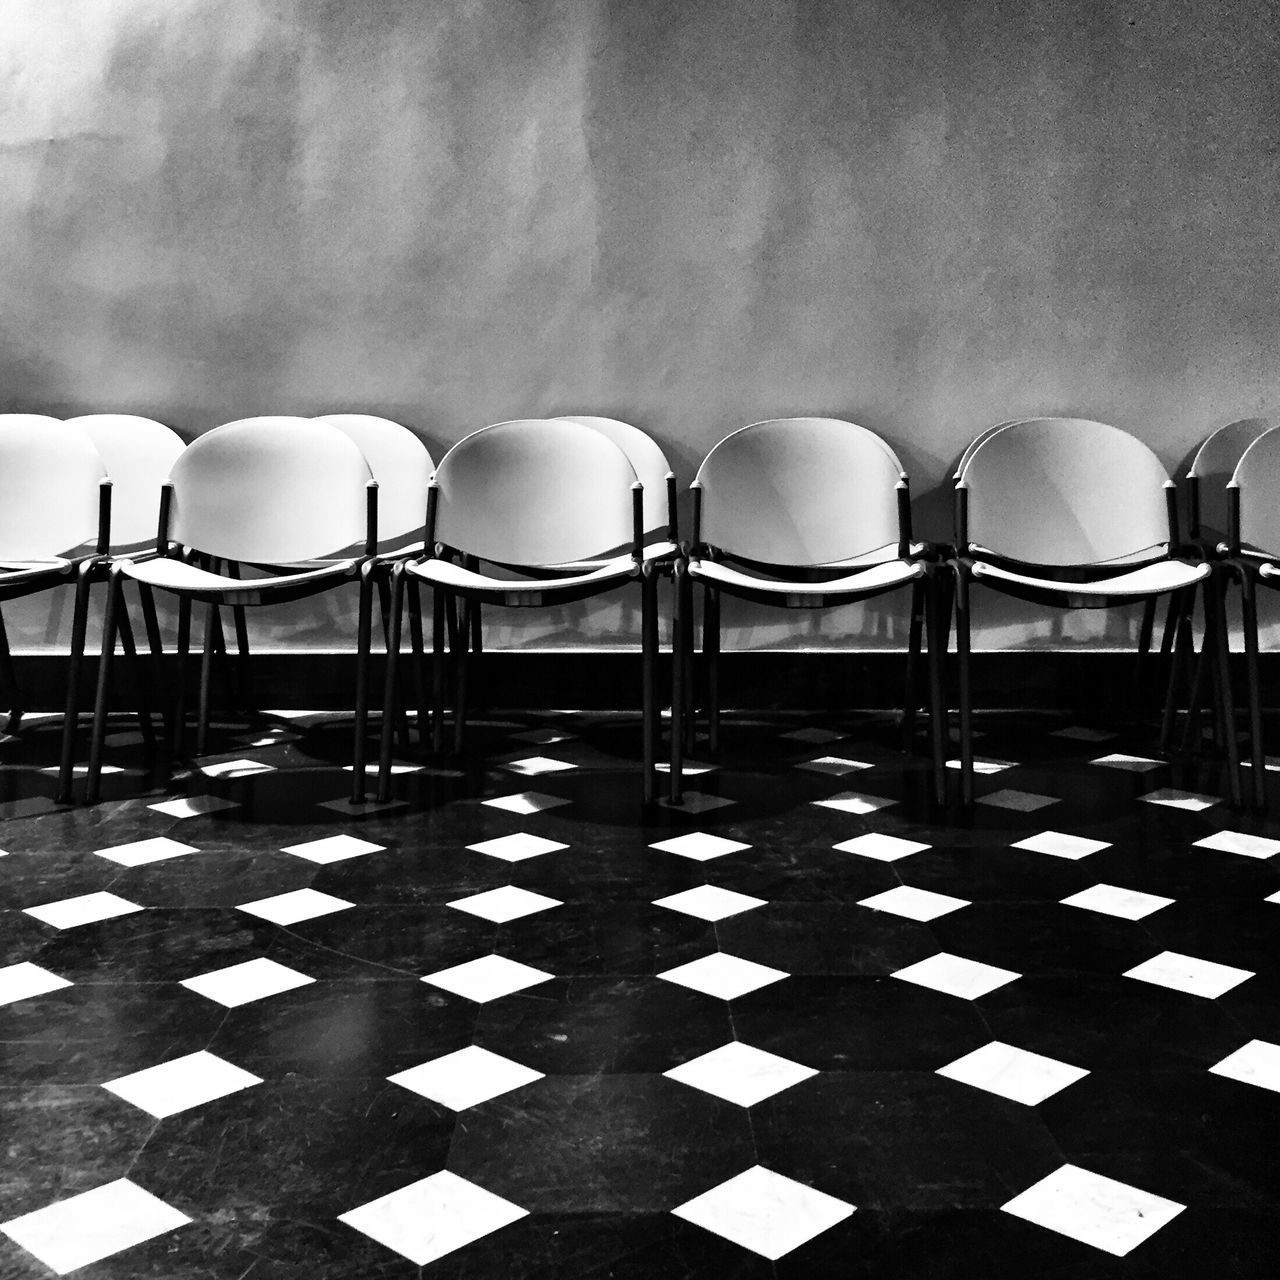 waiting list No People Indoors  Sitting Seat Minimalism Minimalobsession Minimal Minimalist Wait Waiting Waiting In Line Waiting List To Hysteria Floor Kill Em All Alone Loneliness Blackandwhite Black And White Minimalism_bw